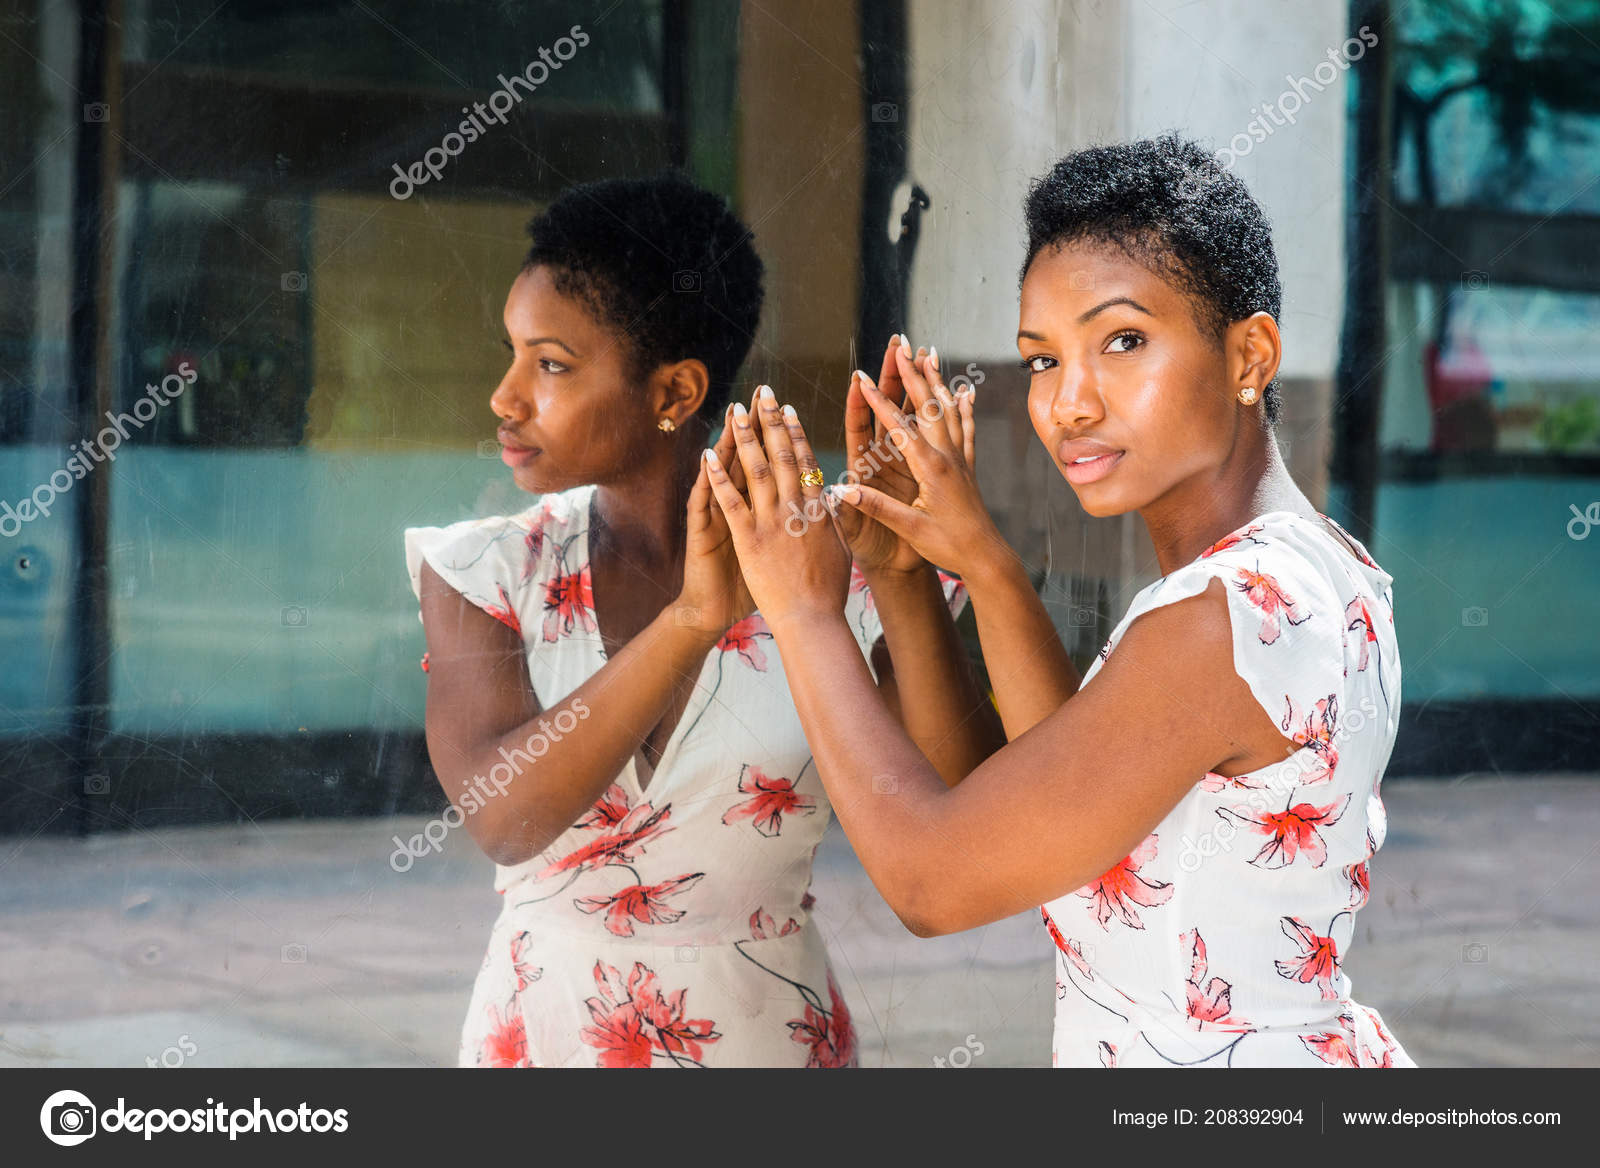 Pictures Short African American Hairstyles Young African American Woman Short Afro Hairstyle Standing Mirror New Stock Photo C Xcai 208392904